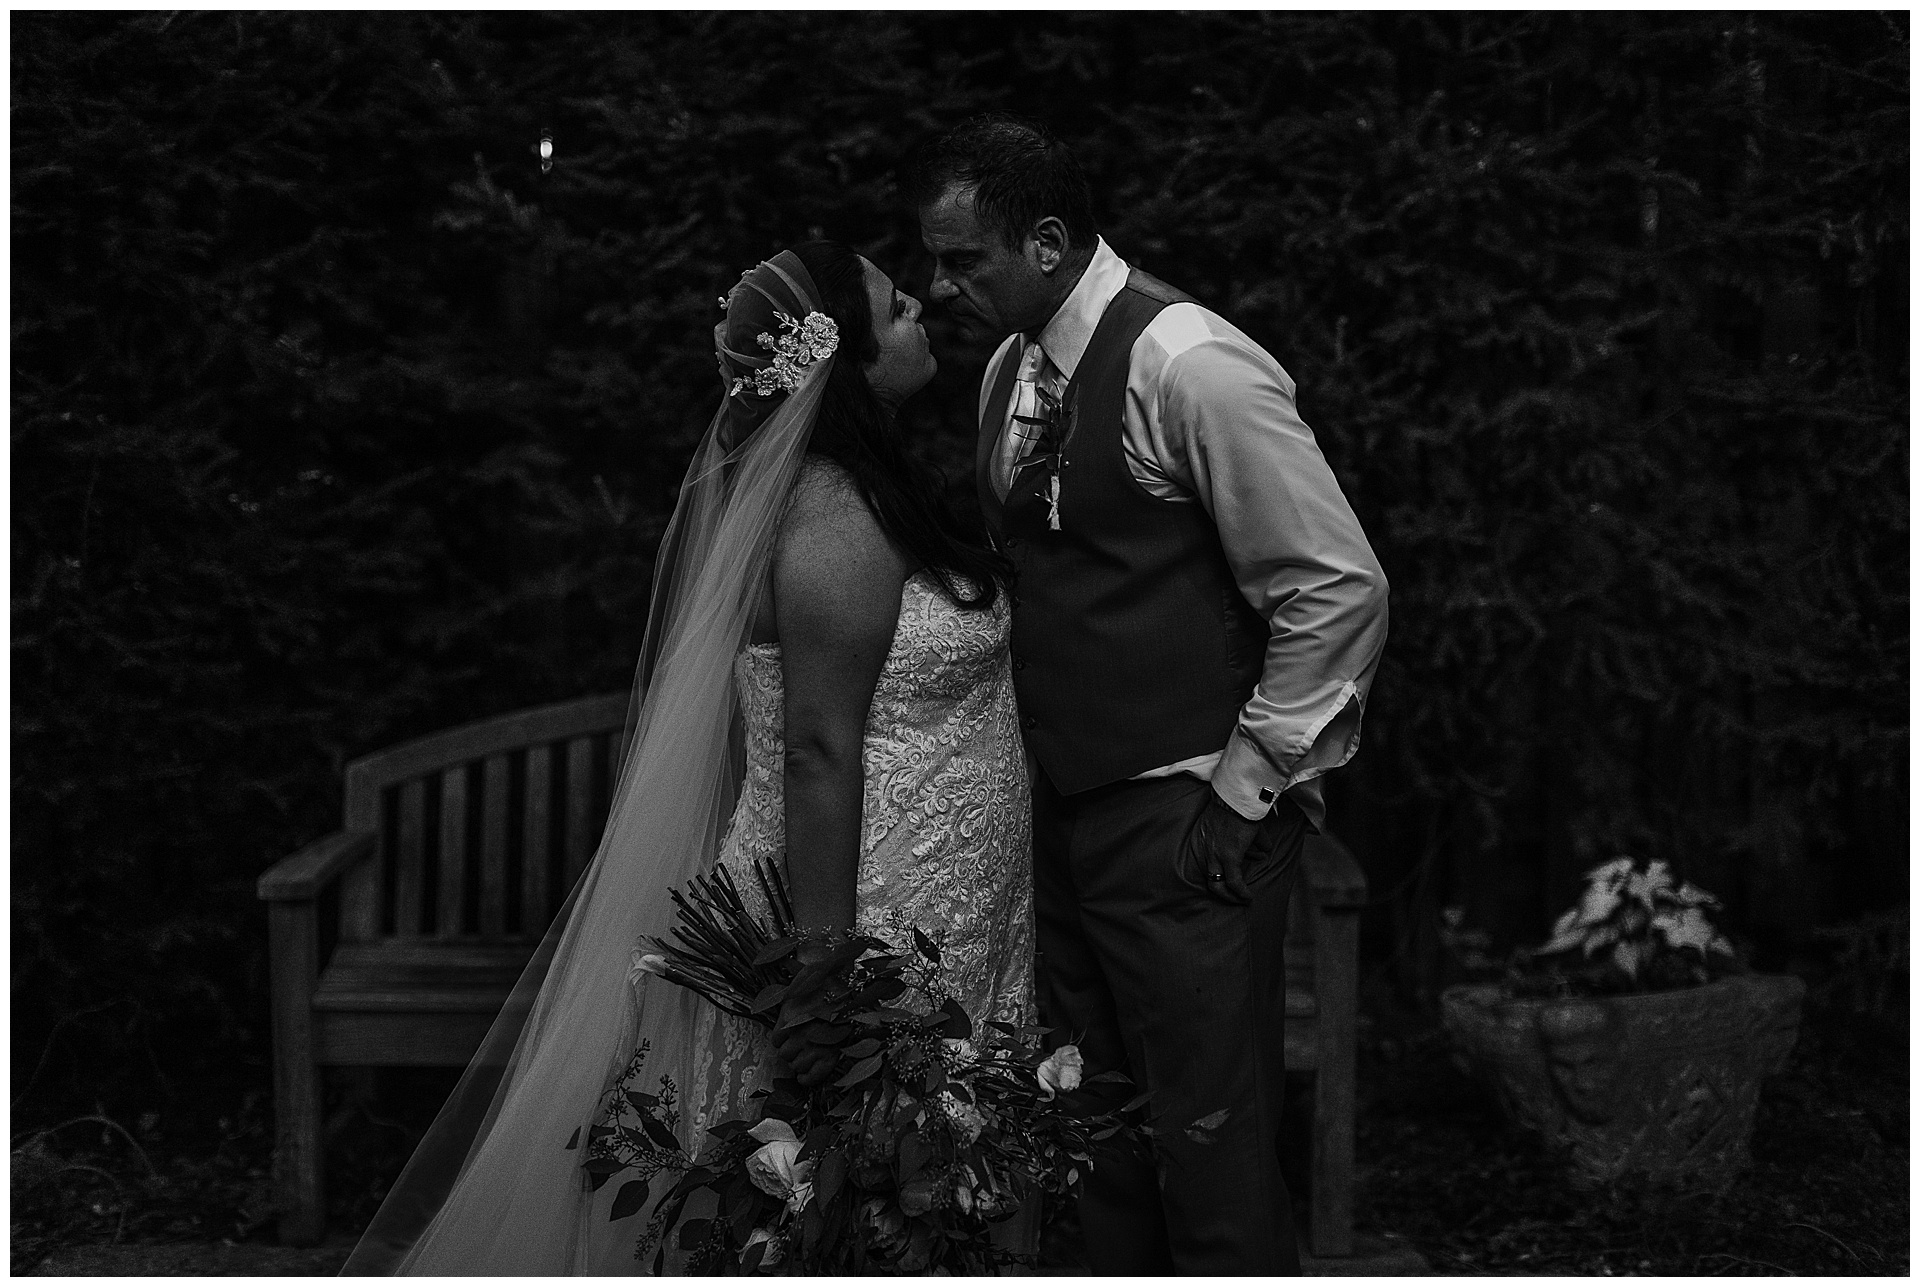 kelton house wedding columbus ohio_mia dimare photo71.jpg